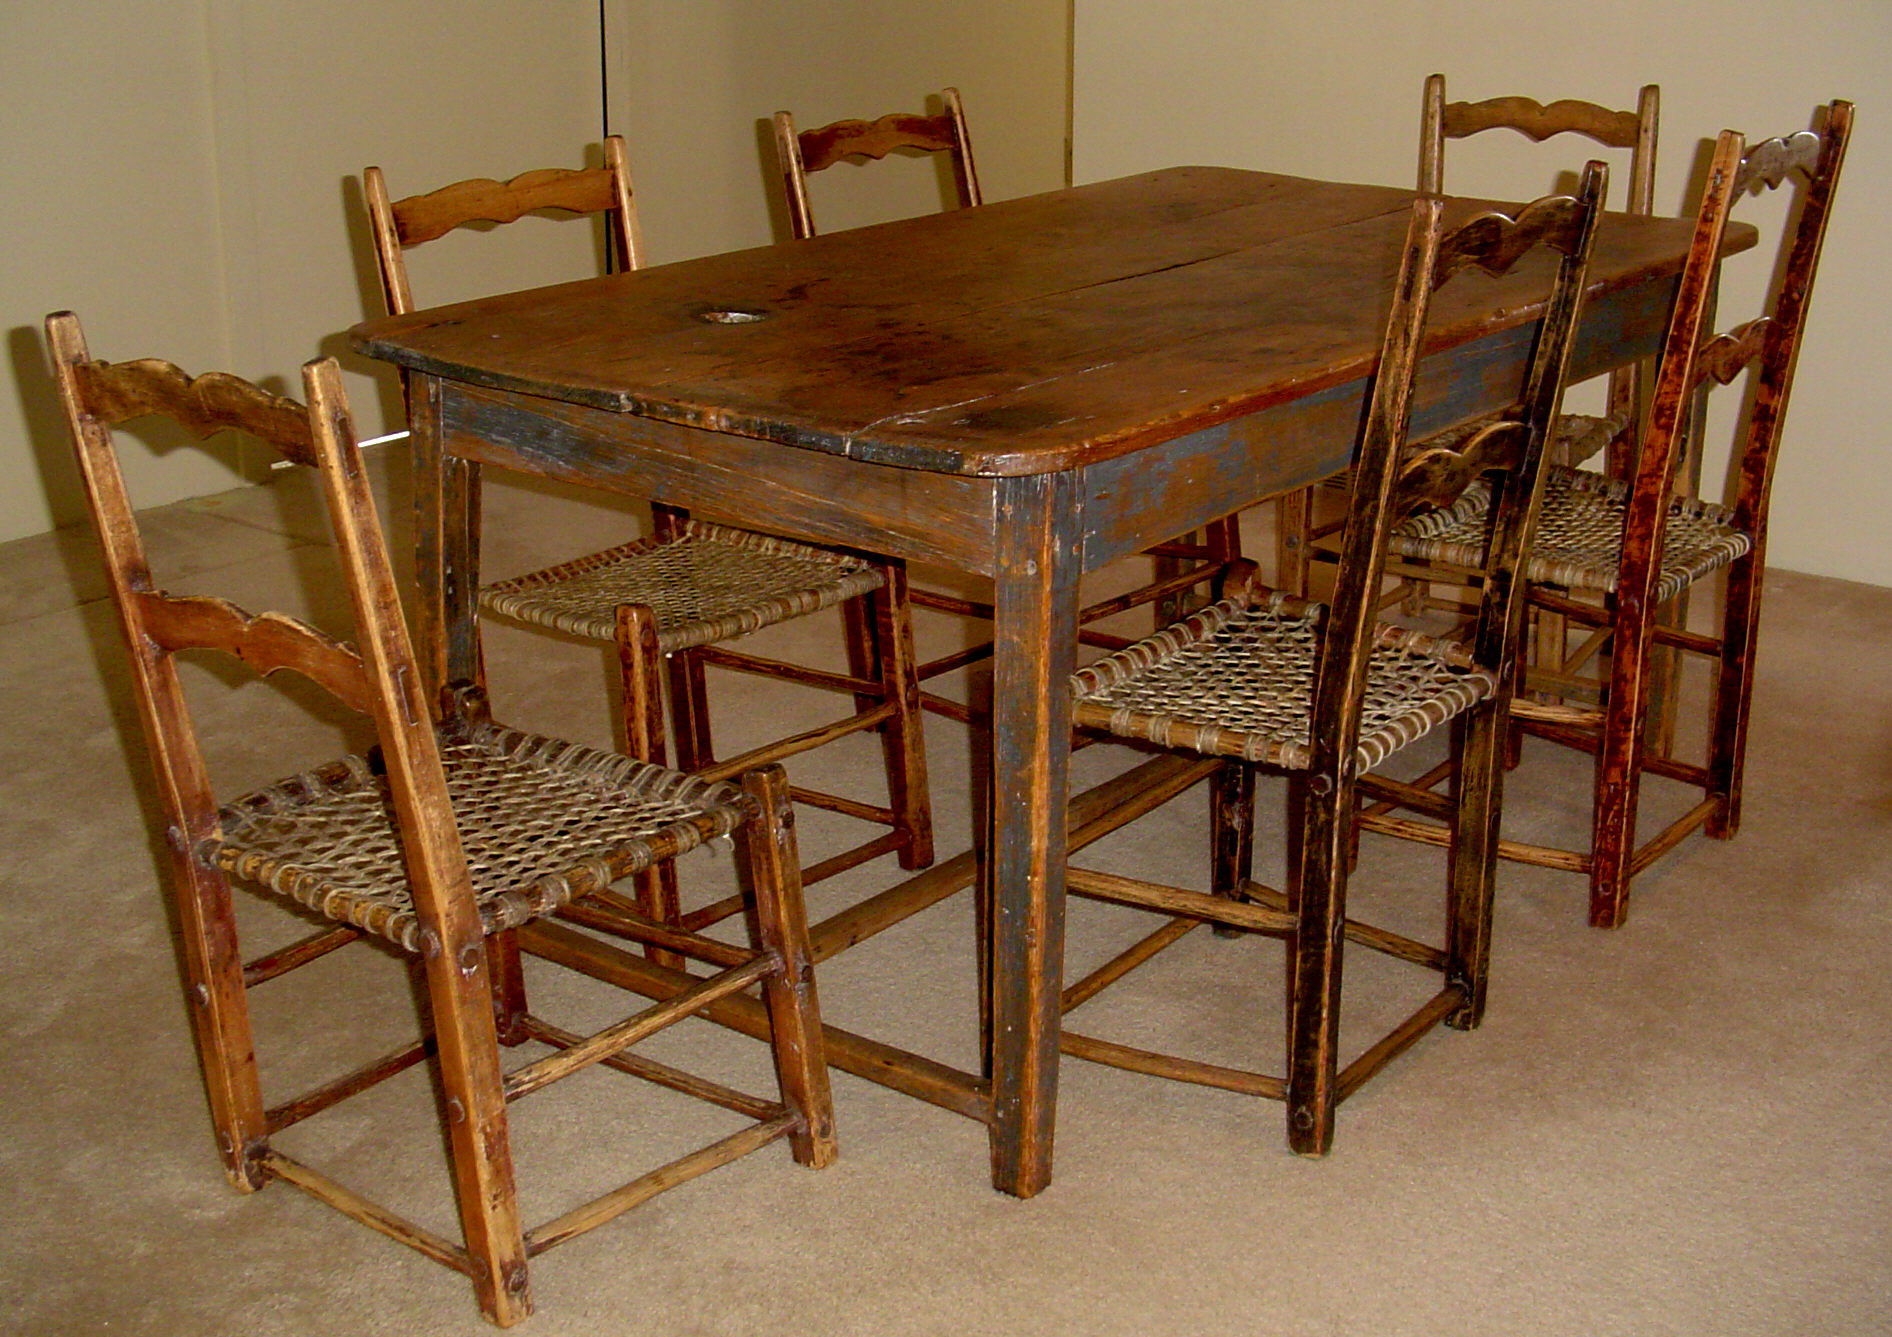 Primitive kitchen set canadian pine wood furniture for for Kitchen table chairs for sale